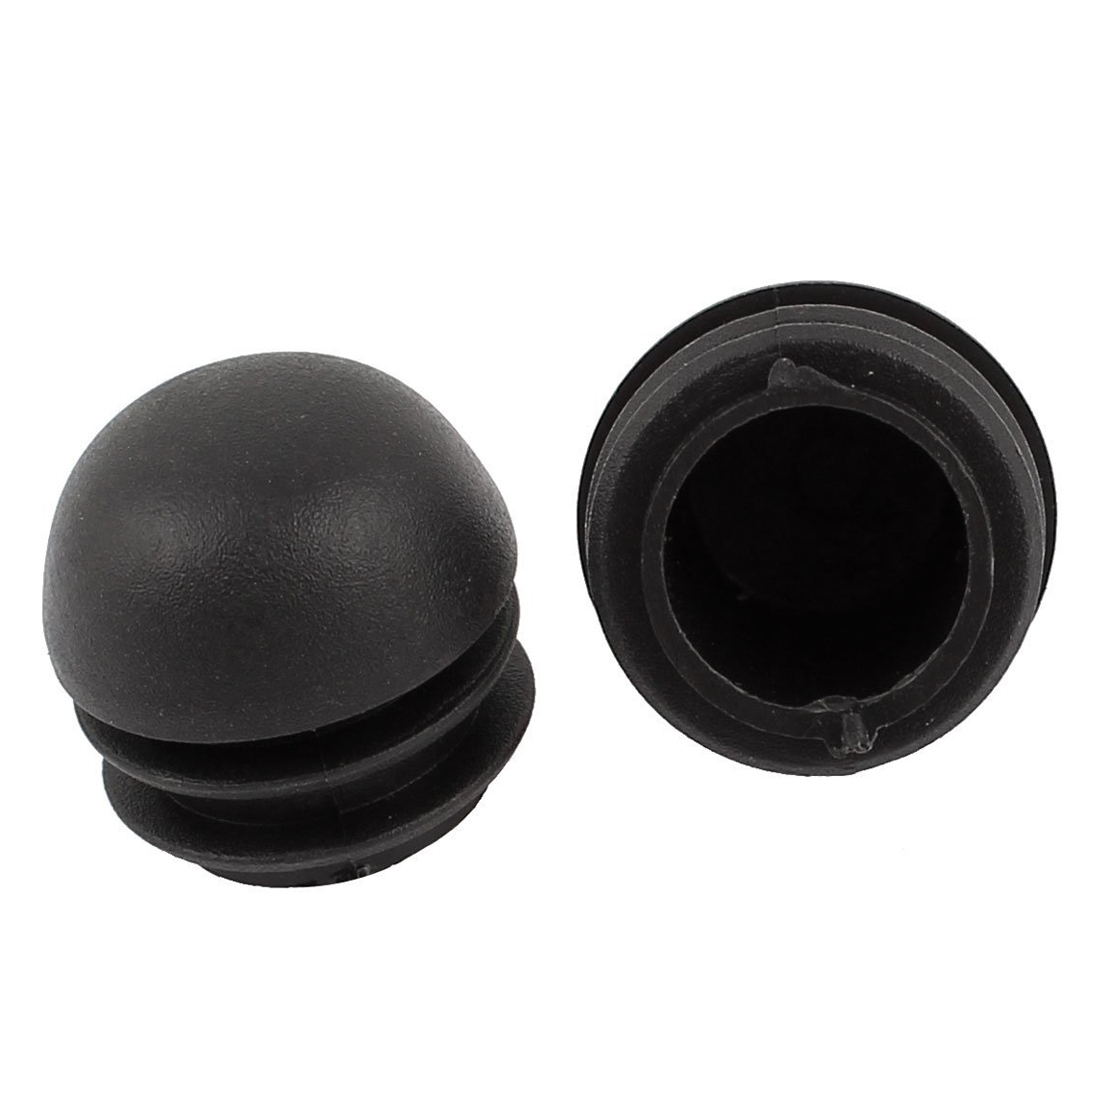 цена на Hot Sale 2 Pcs 25mm Dia Plastic Round Tube Inserts End Blanking Caps Black